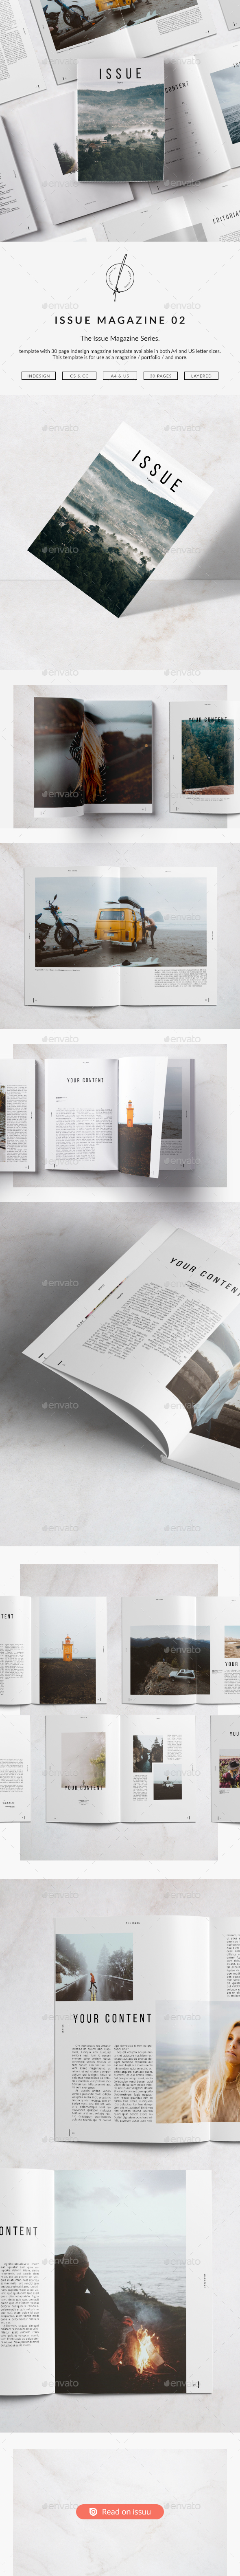 Issue Magazine 02 - Magazines Print Templates